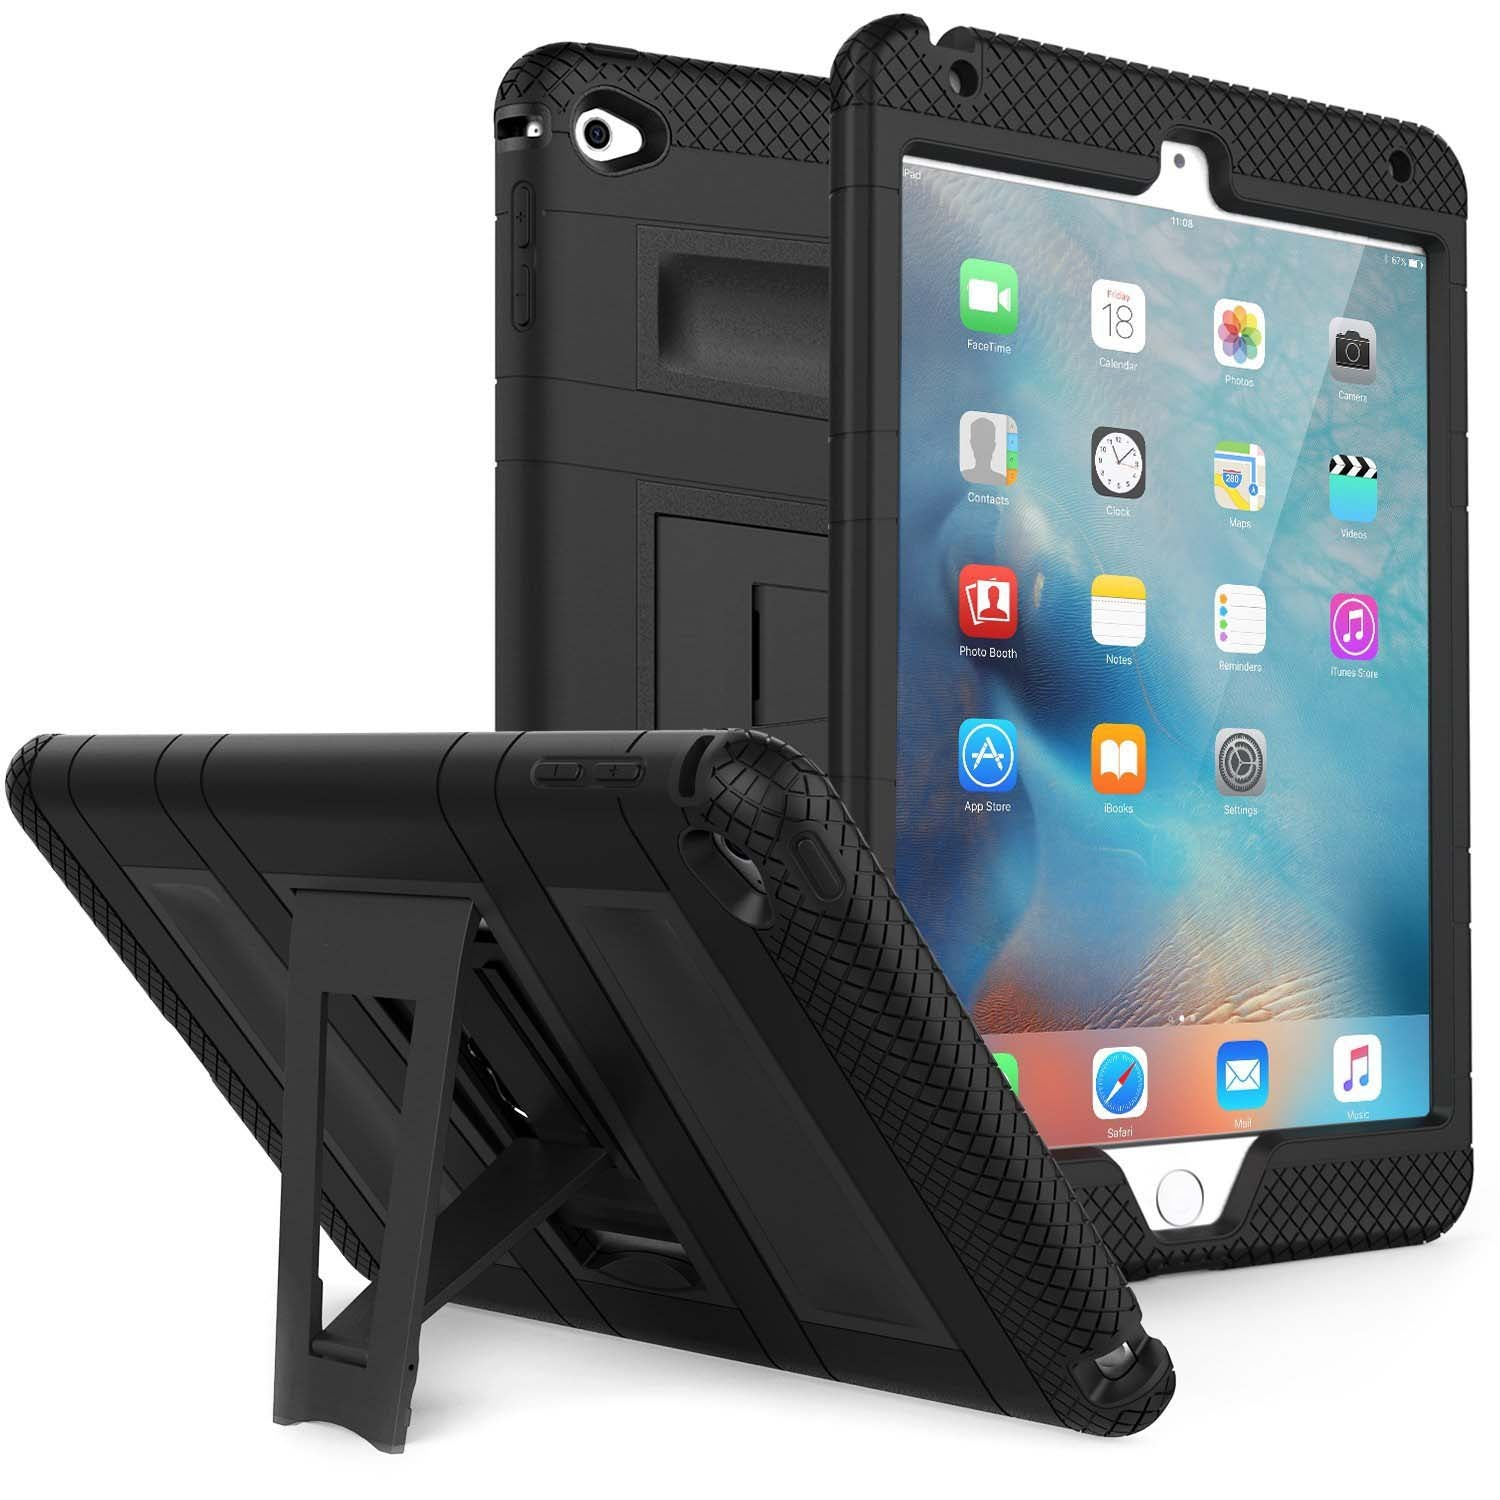 Rugged Defender Case (Apple iPad Pro 12.9, Pro 10.5, Air 3, Mini 4, Mini 5 & Amazon Kindle)